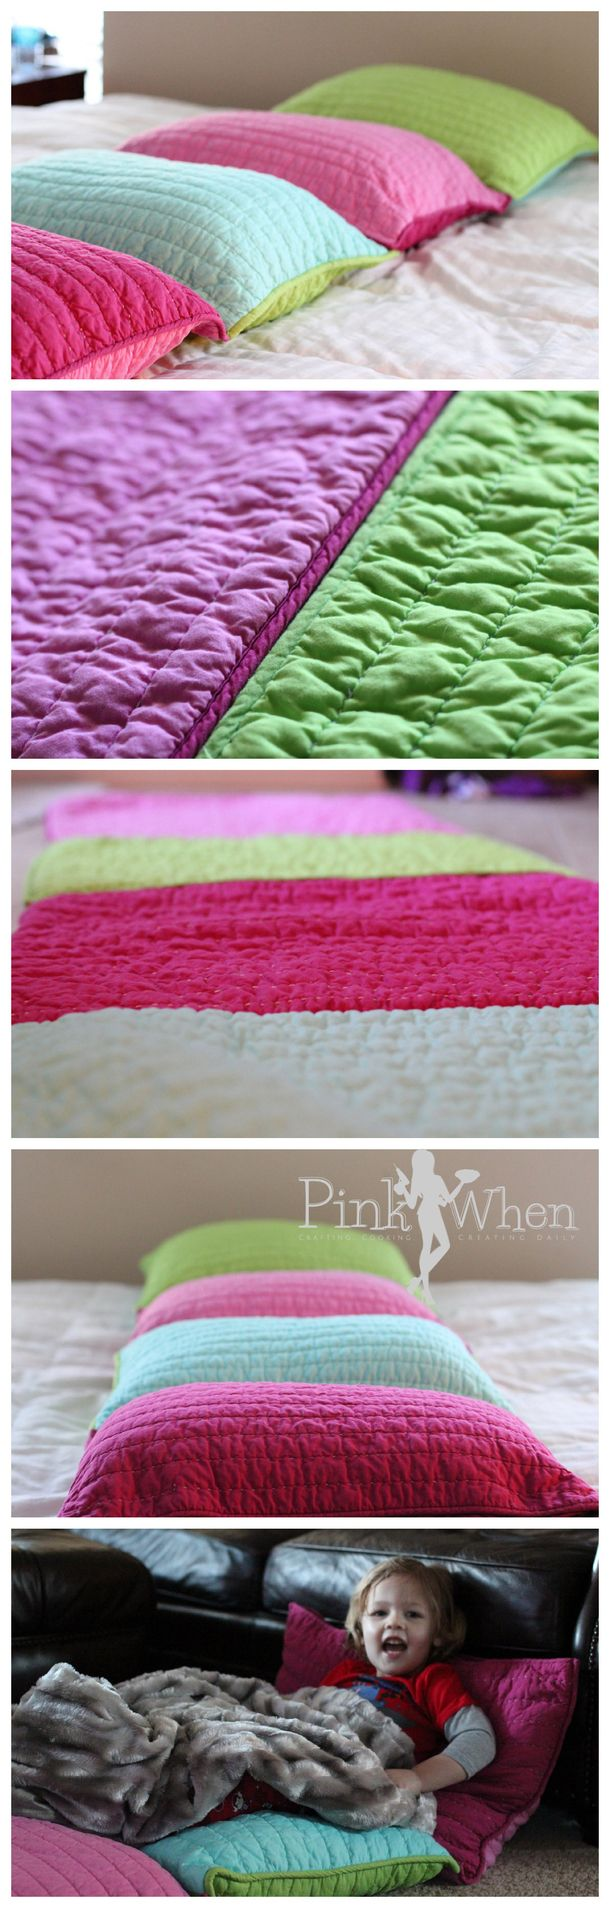 Ideas For Old Bed Pillows: 25+ unique Old pillows ideas on Pinterest   DIY upcycling jeans    ,